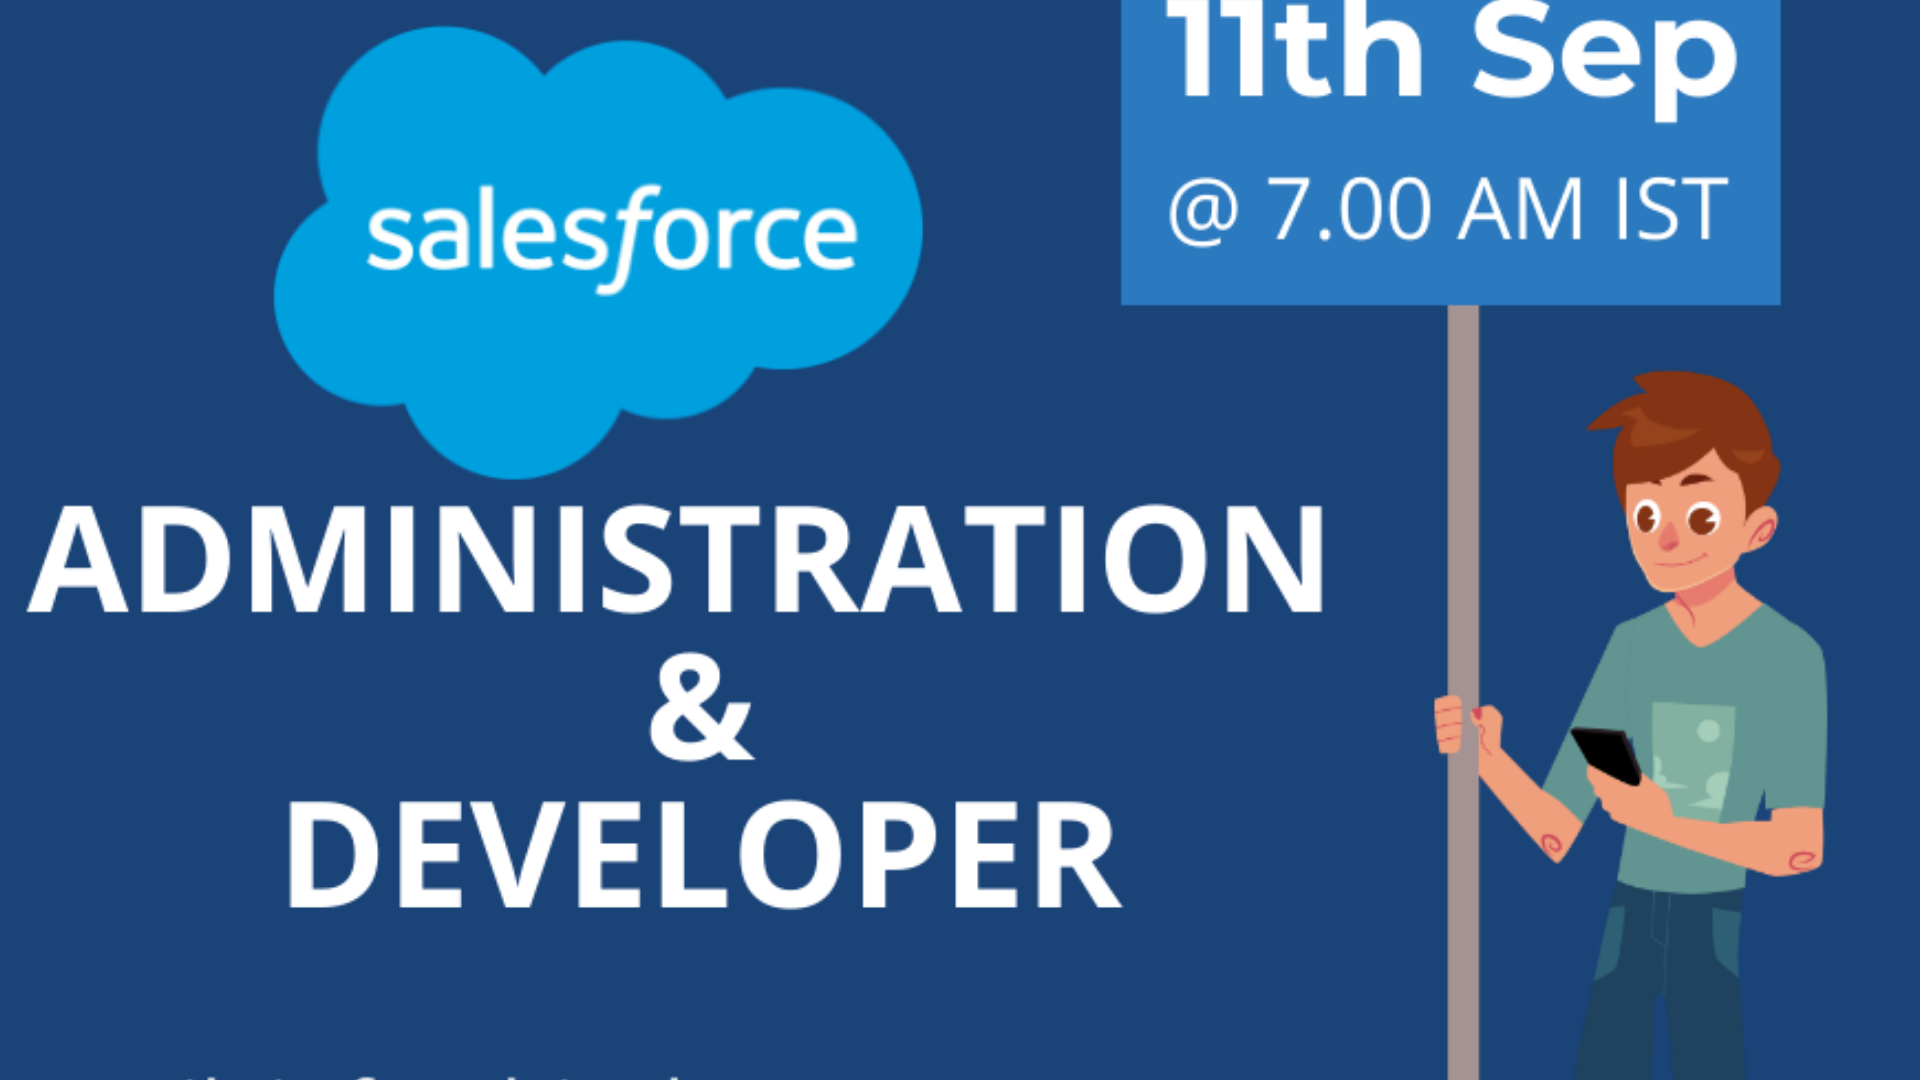 Salesforce Administration & Developer Training From 11th